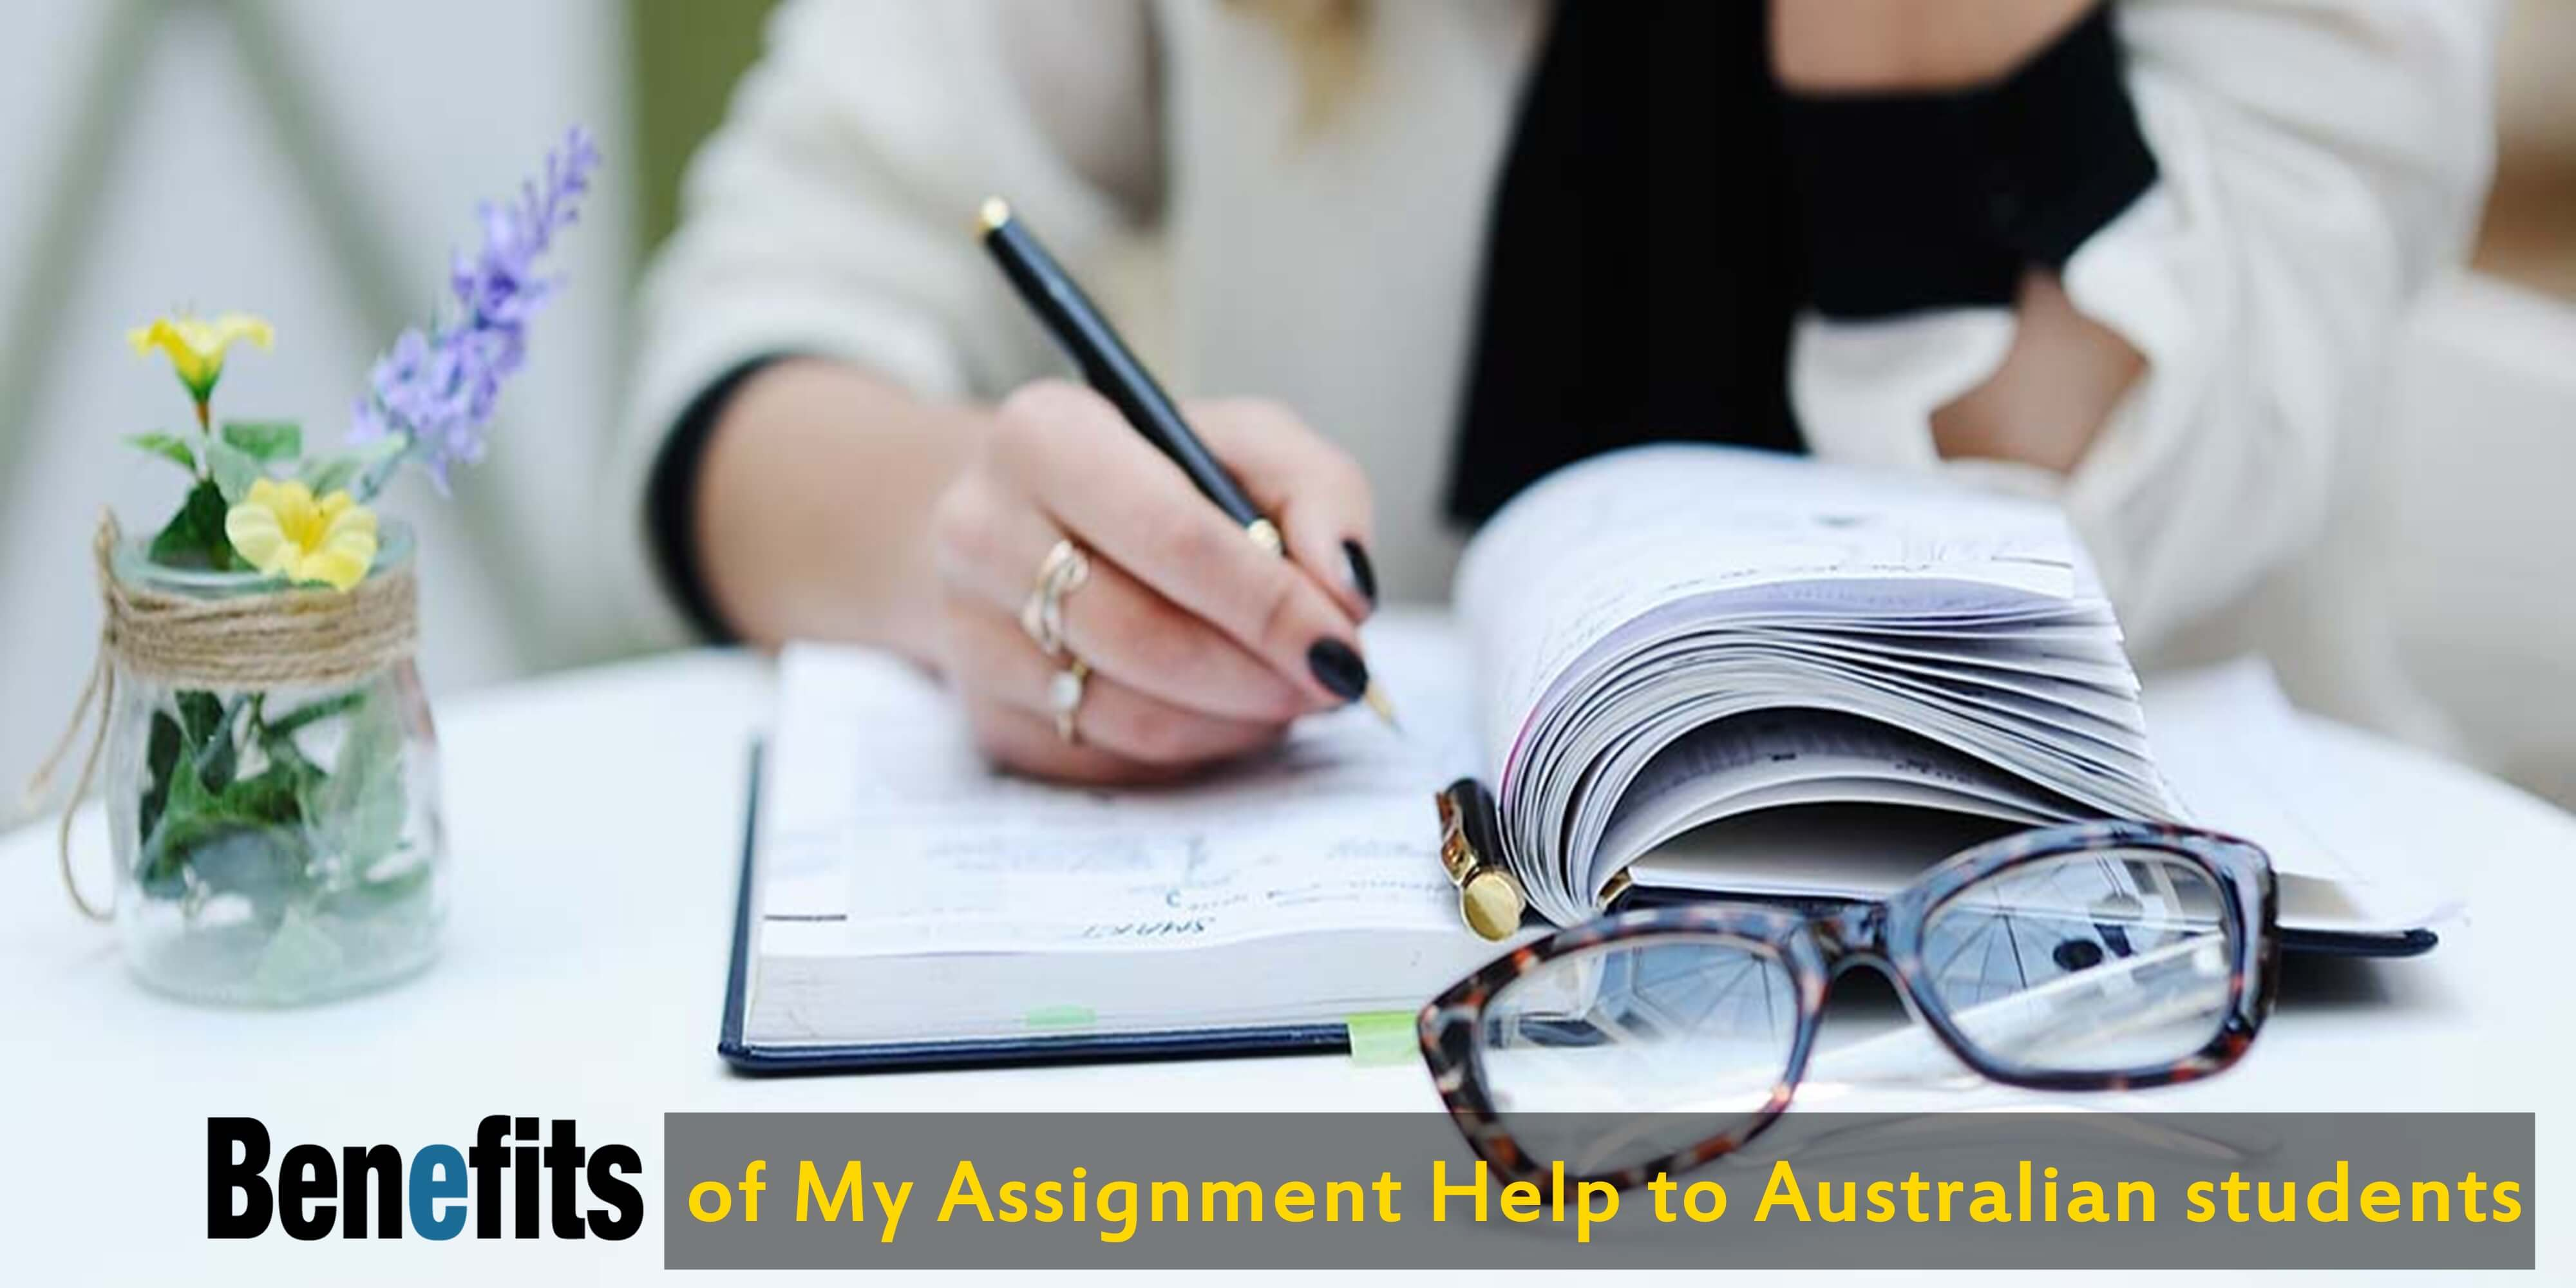 Benefits of My Assignment Help to Australian students